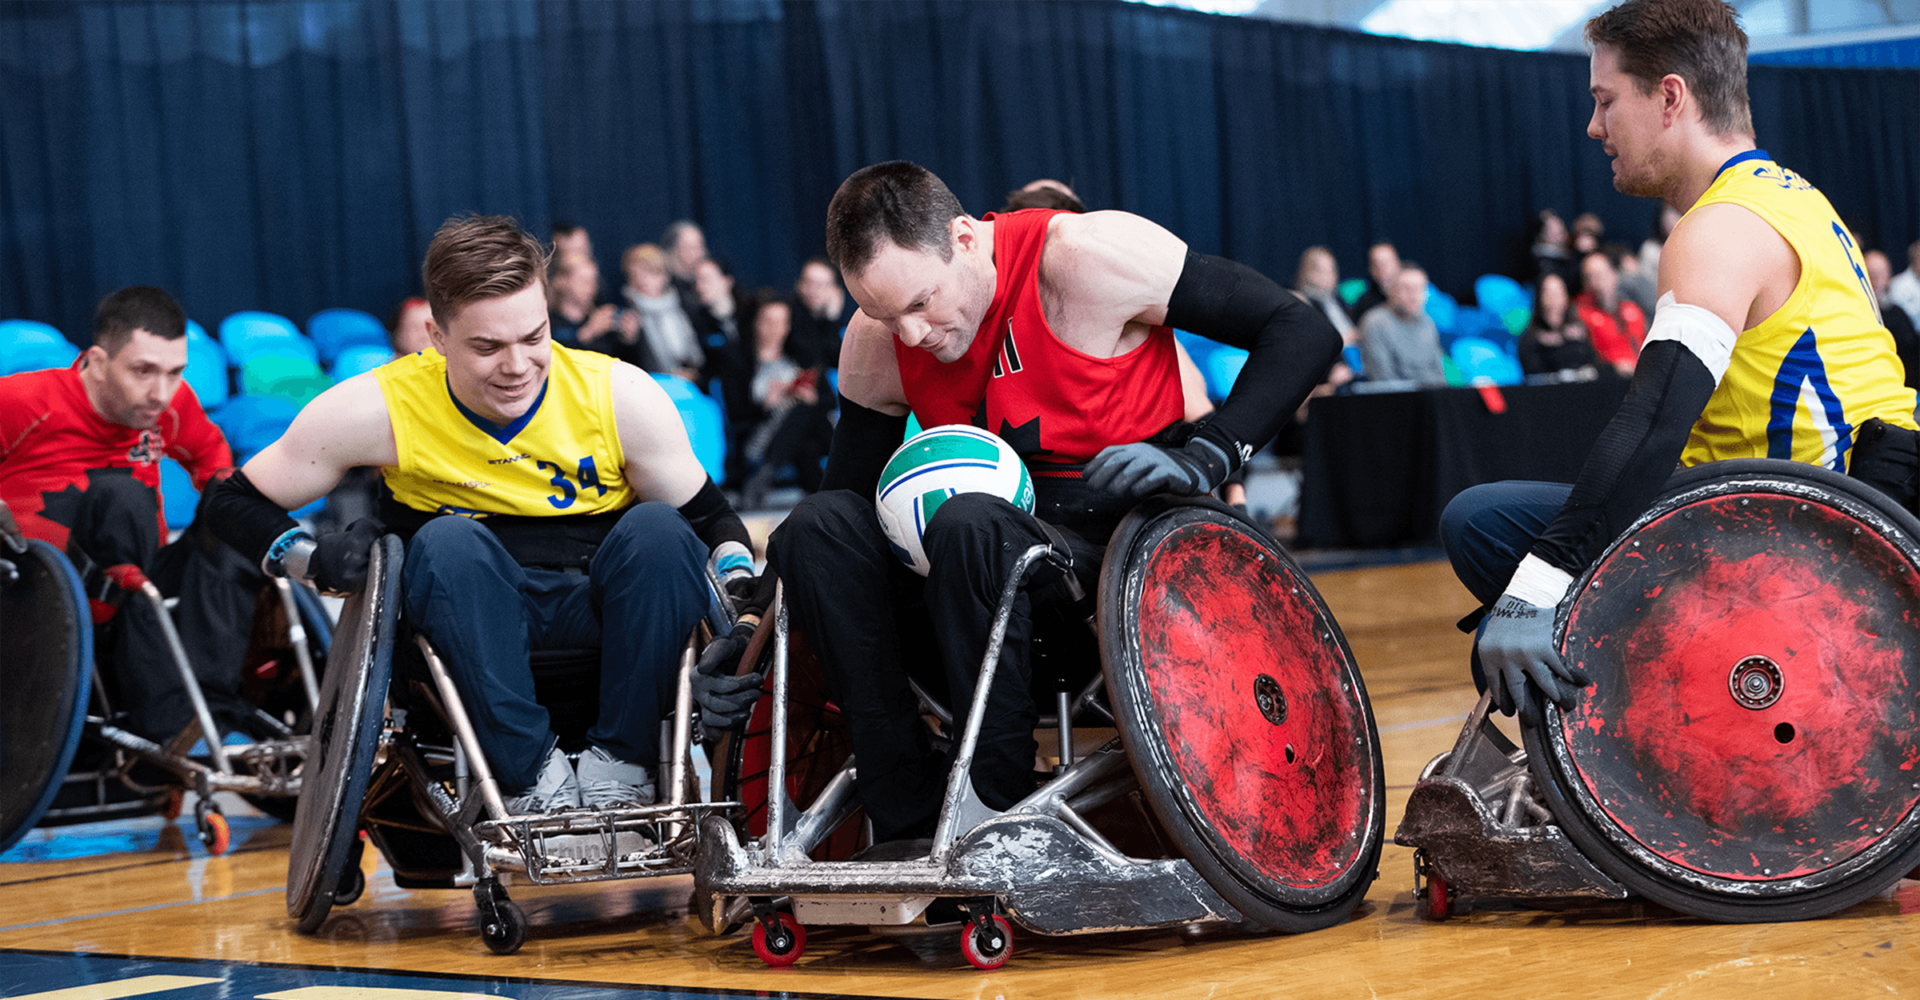 CANADA CLINCHES SEMIFINAL BERTH AT WHEELCHAIR RUGBY PARALYMPIC GAMES QUALIFIER